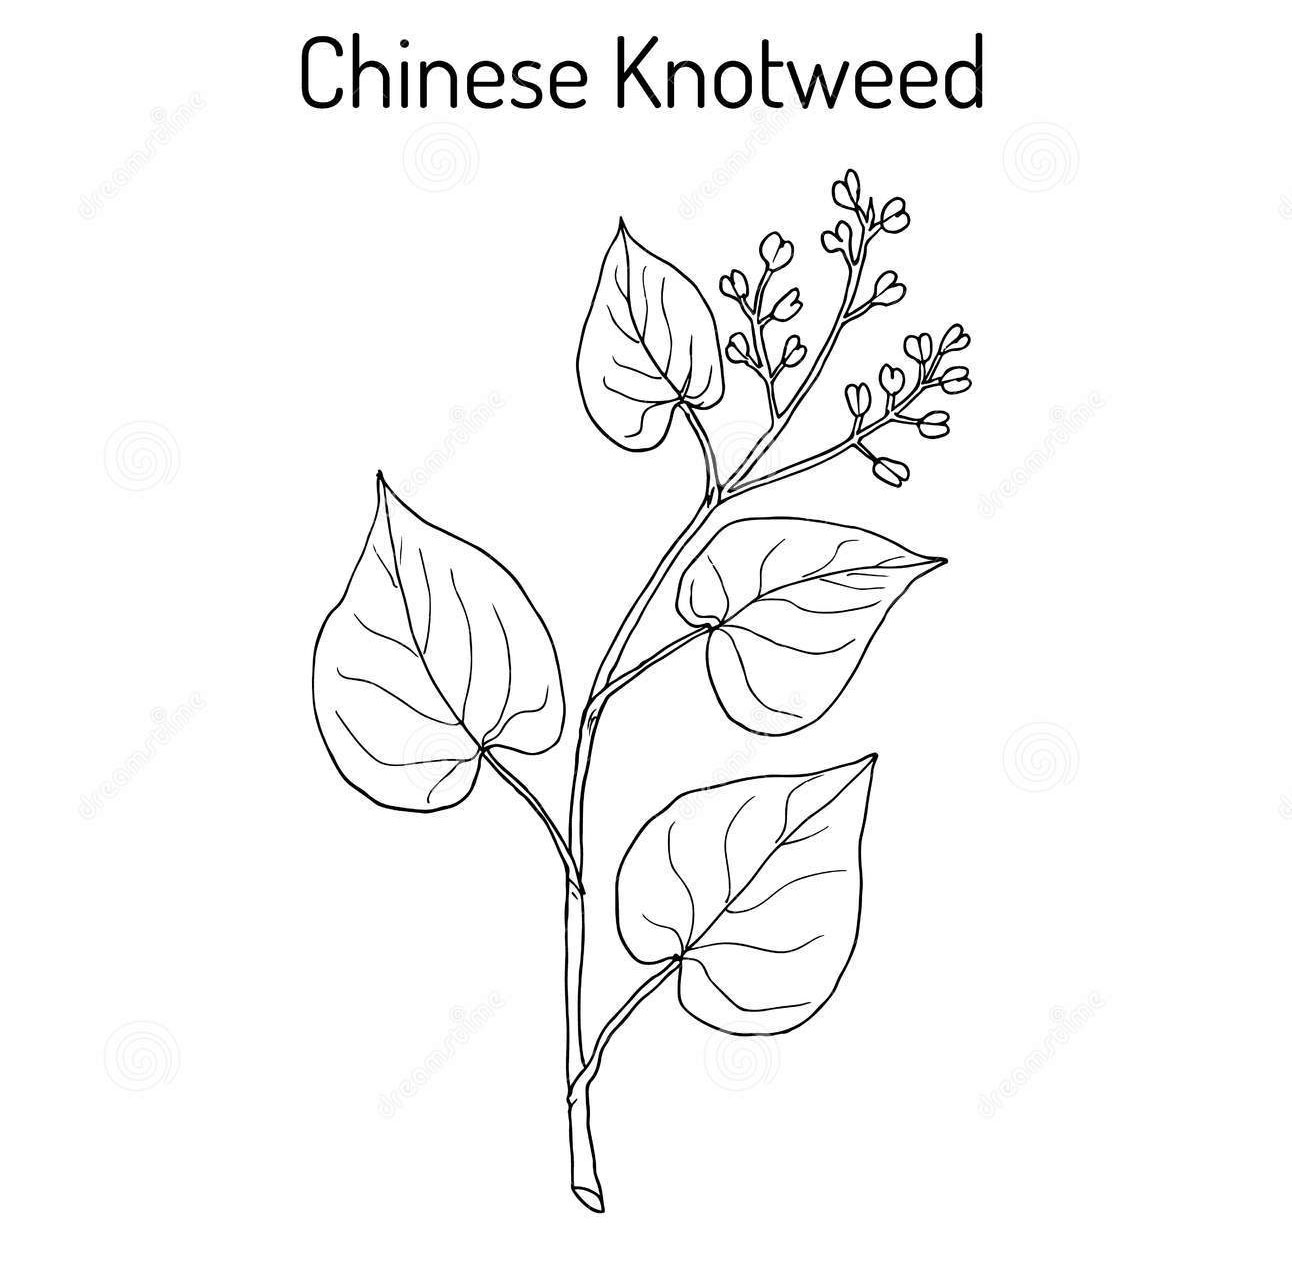 Sketch-of-Chinese-knotweed